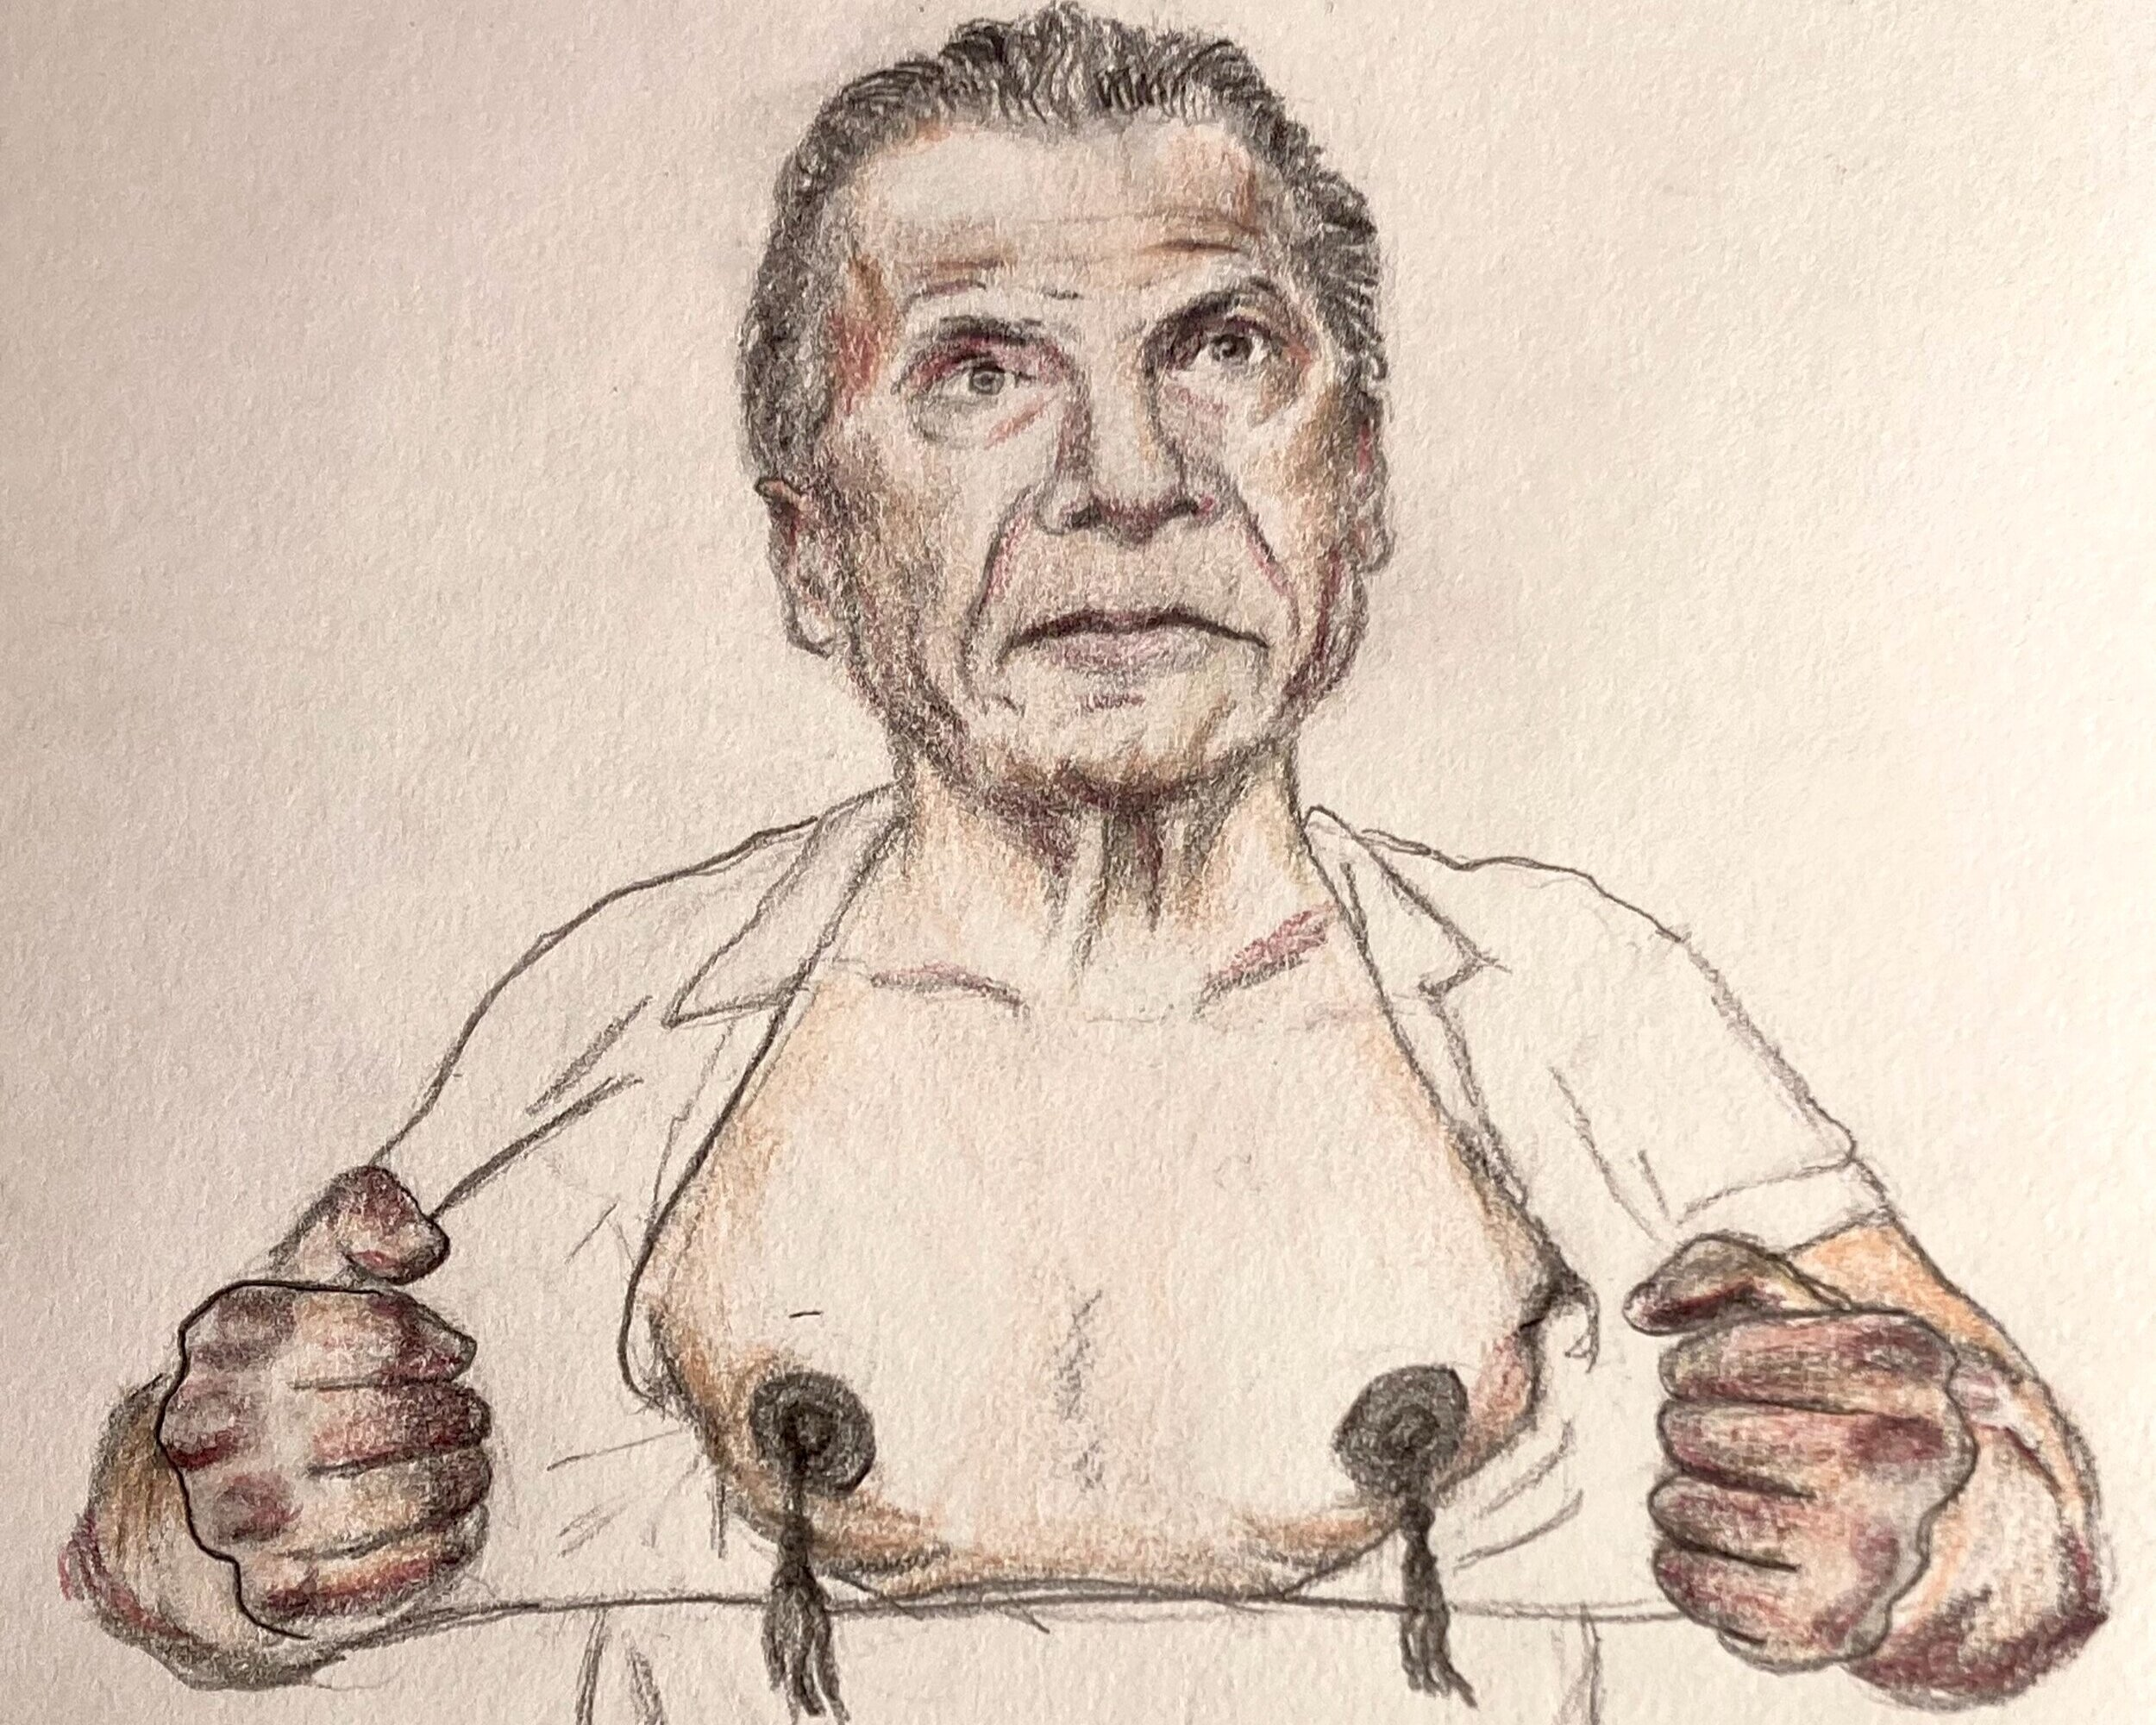 Andrew Cuomo Insists That His Nipples Are Not Pierced, Just Very Hard - by Ref R. Tyrant